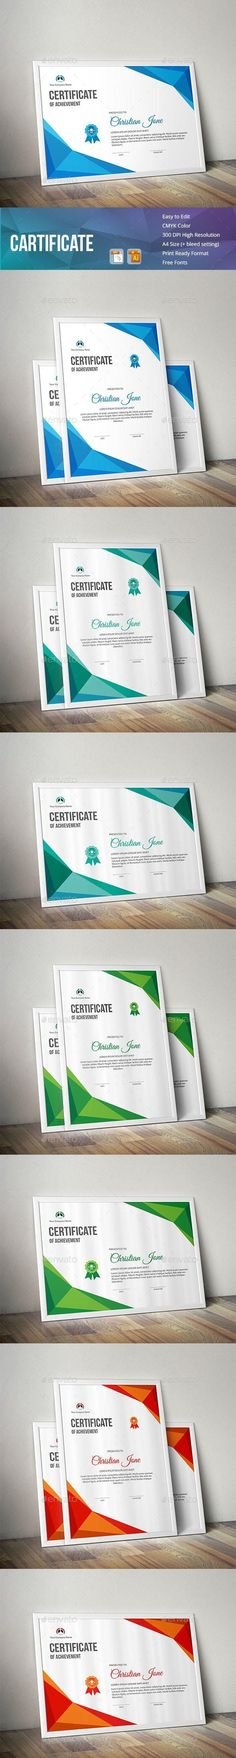 ▵ [Get Nulled]◩ Certificate Achievement Awarded Business Card Certificate Stationery Printing, Stationery Templates, Stationery Design, Stencil Templates, Print Templates, Design Templates, Certificate Design, Certificate Templates, Print Design